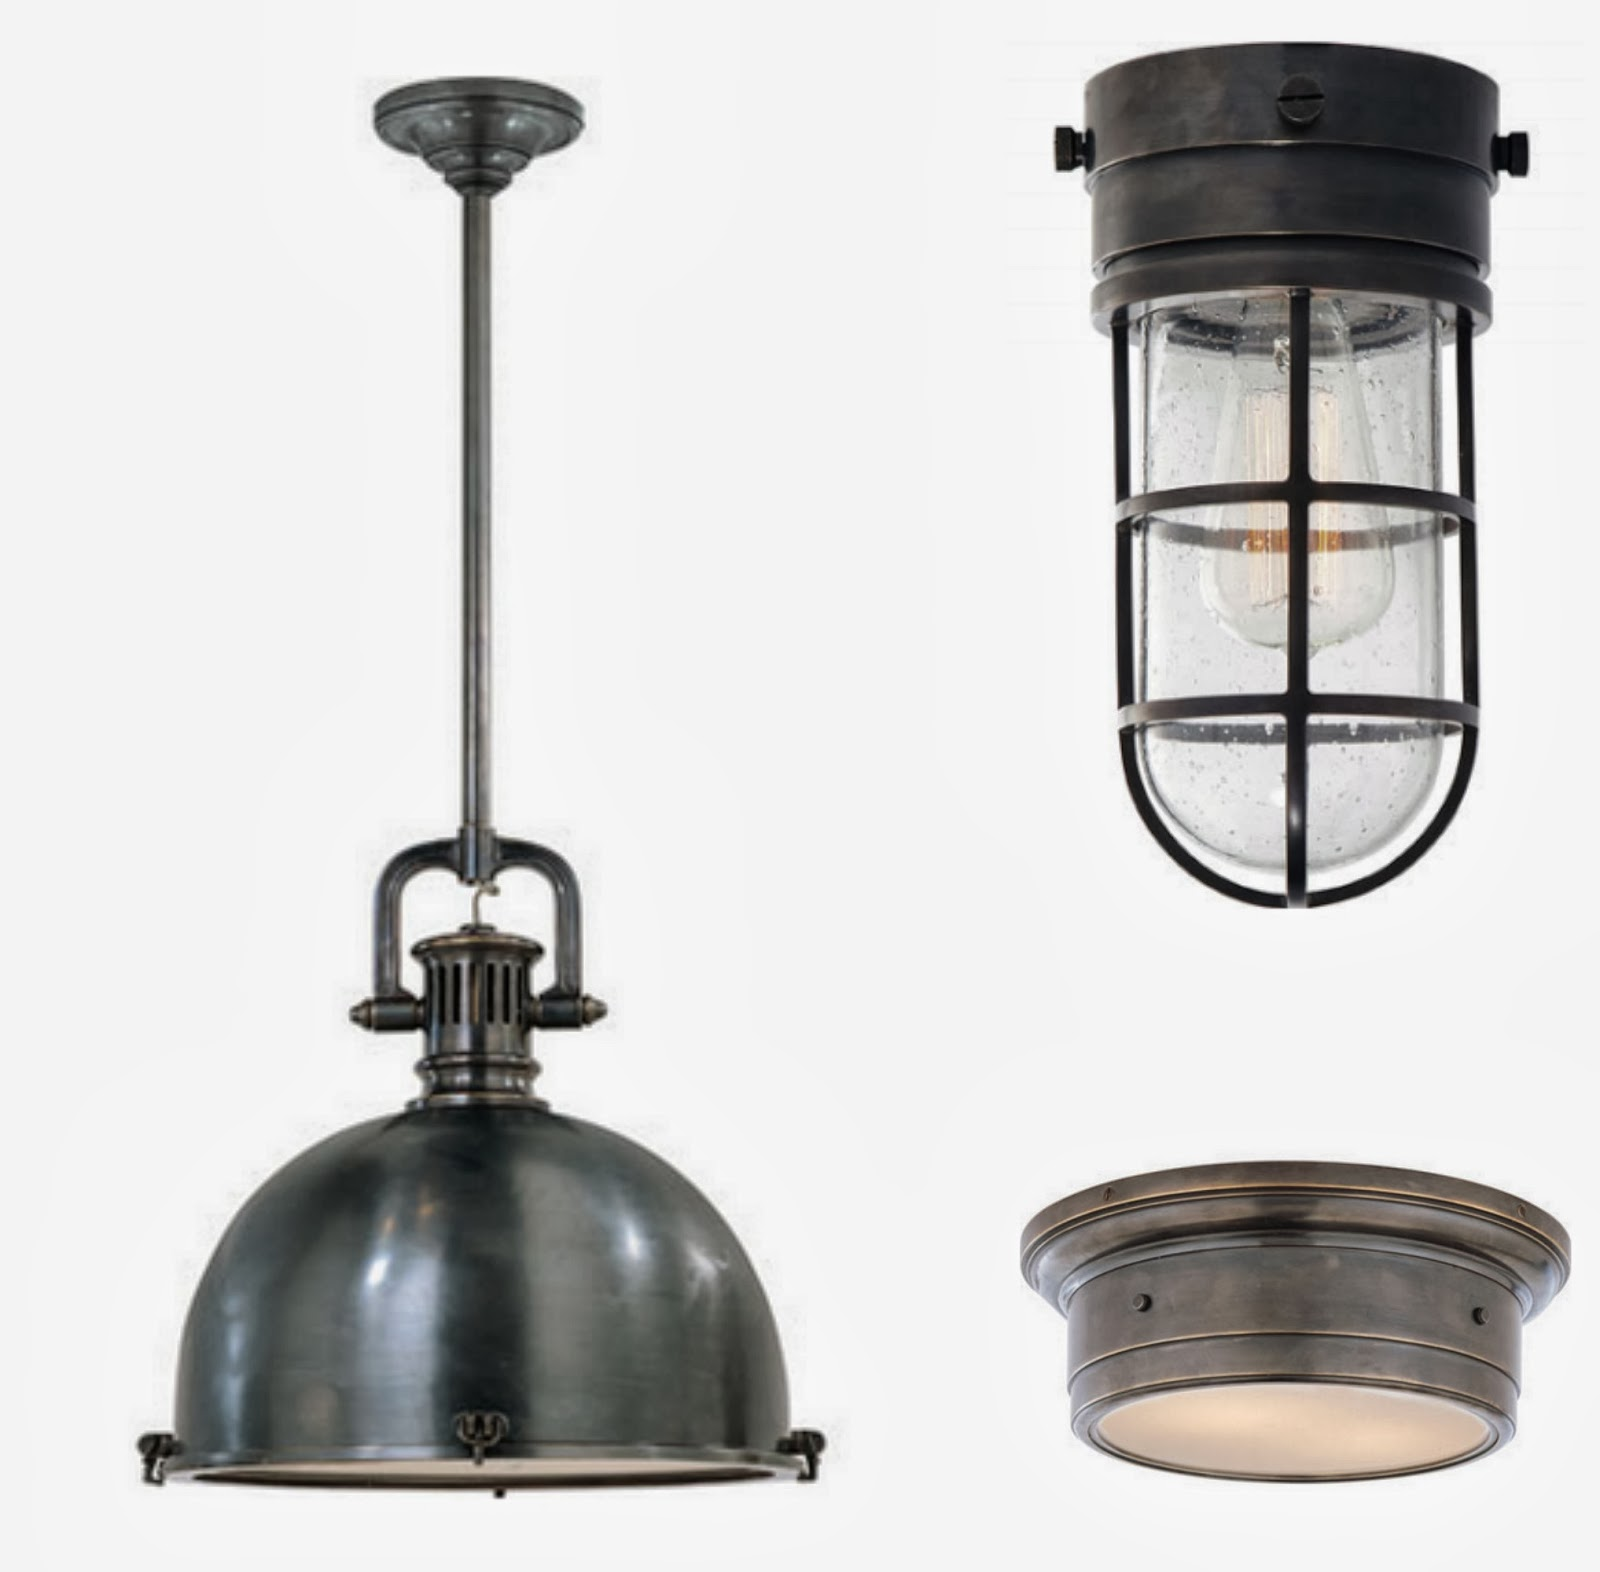 Circa S Yoke Pendant Marine Flush Mount And Siena